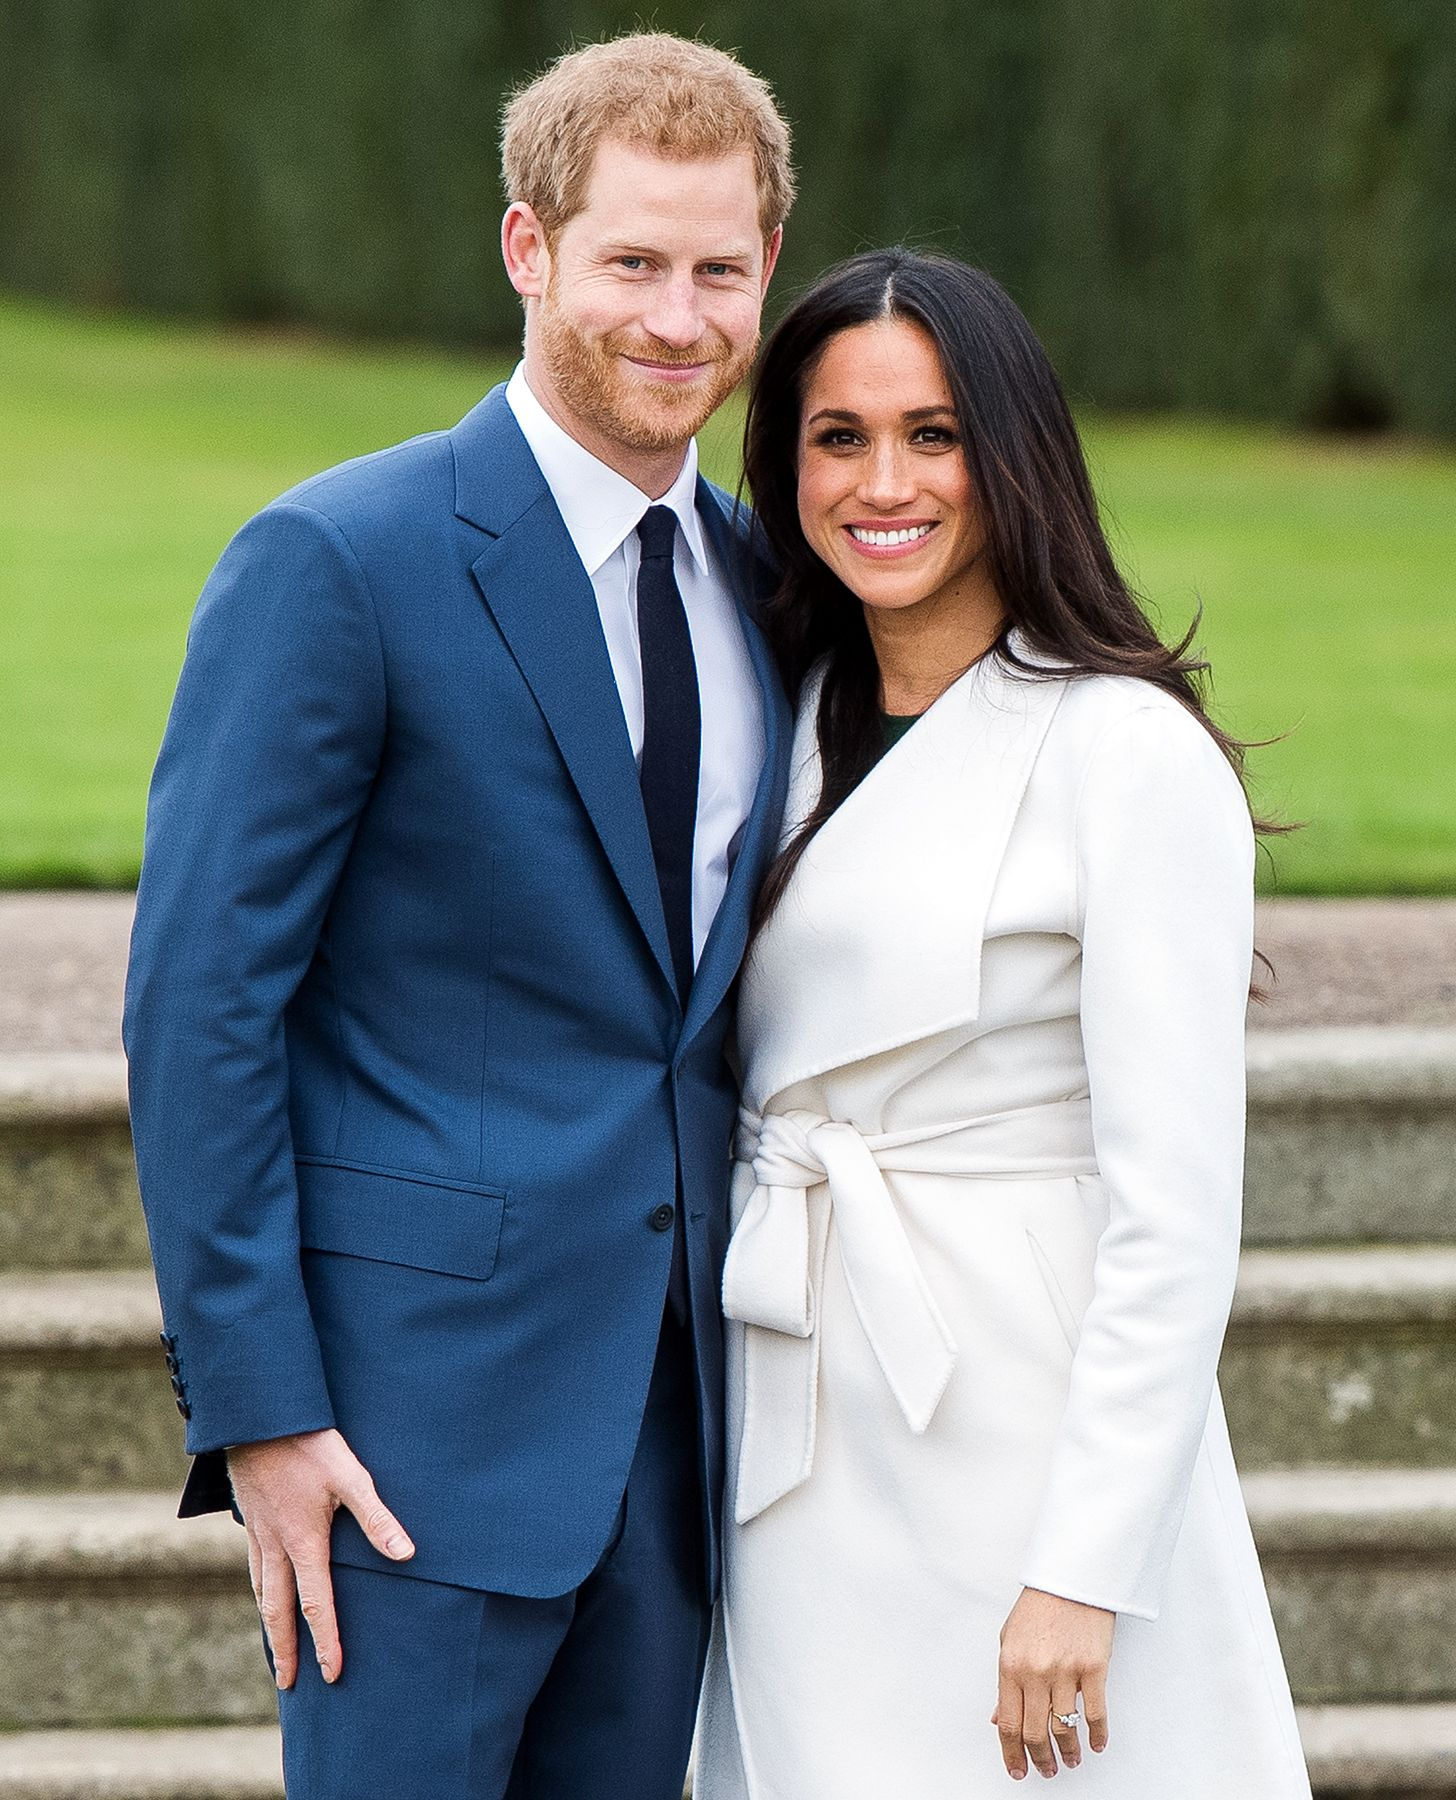 Prince Harry And Meghan Markle's Wedding Venue And Date